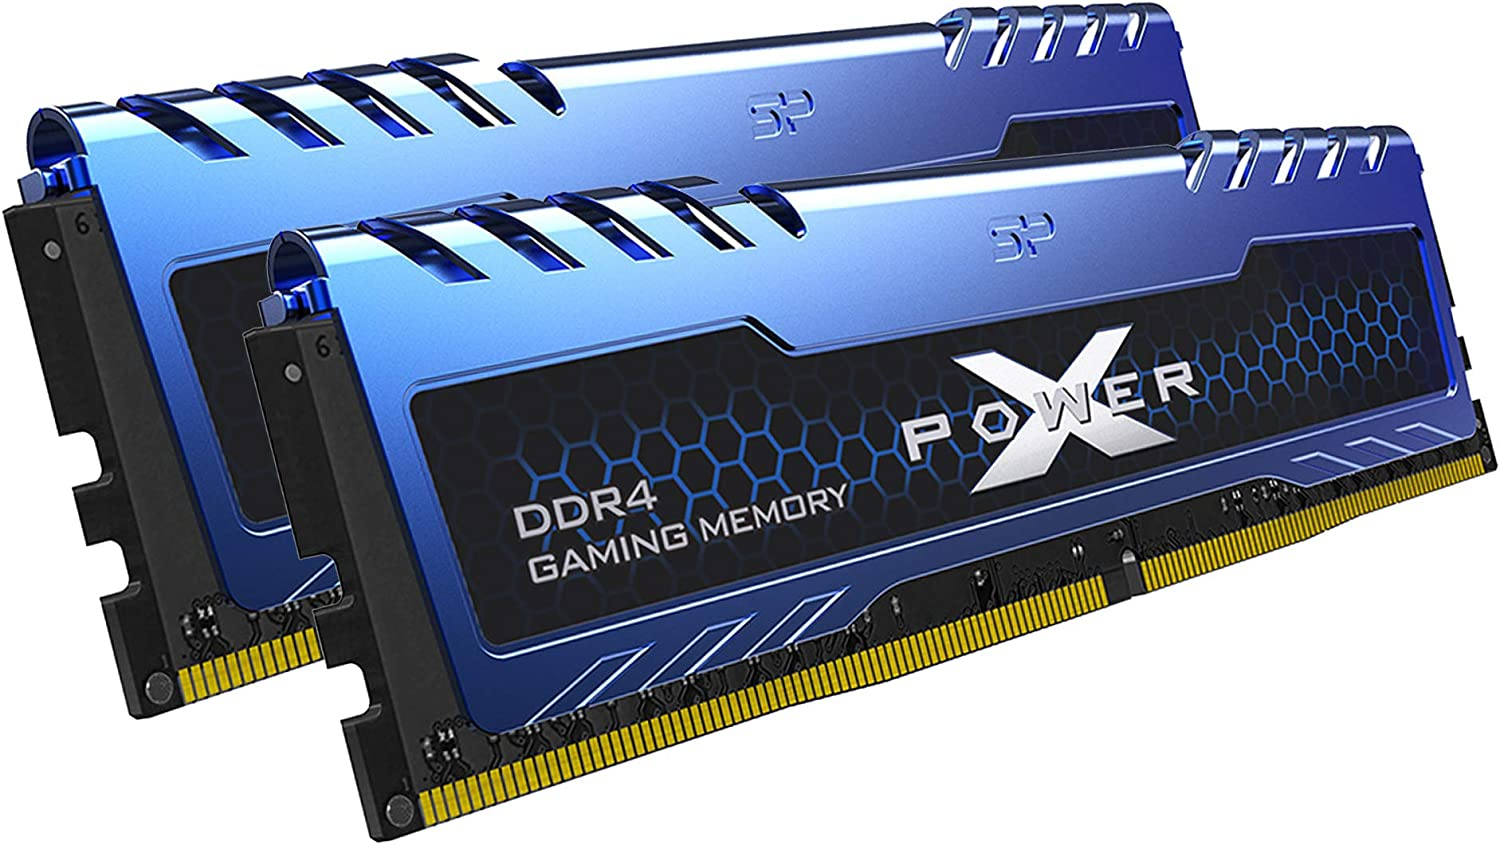 Silicon Power XPOWER Turbine Gaming DDR4 16GB (8GBx2) 3200MHz (PC4 25600) 288-pin CL16 1.35V UDIMM Desktop Memory Module - Low Voltage (SP016GXLZU320BDA)